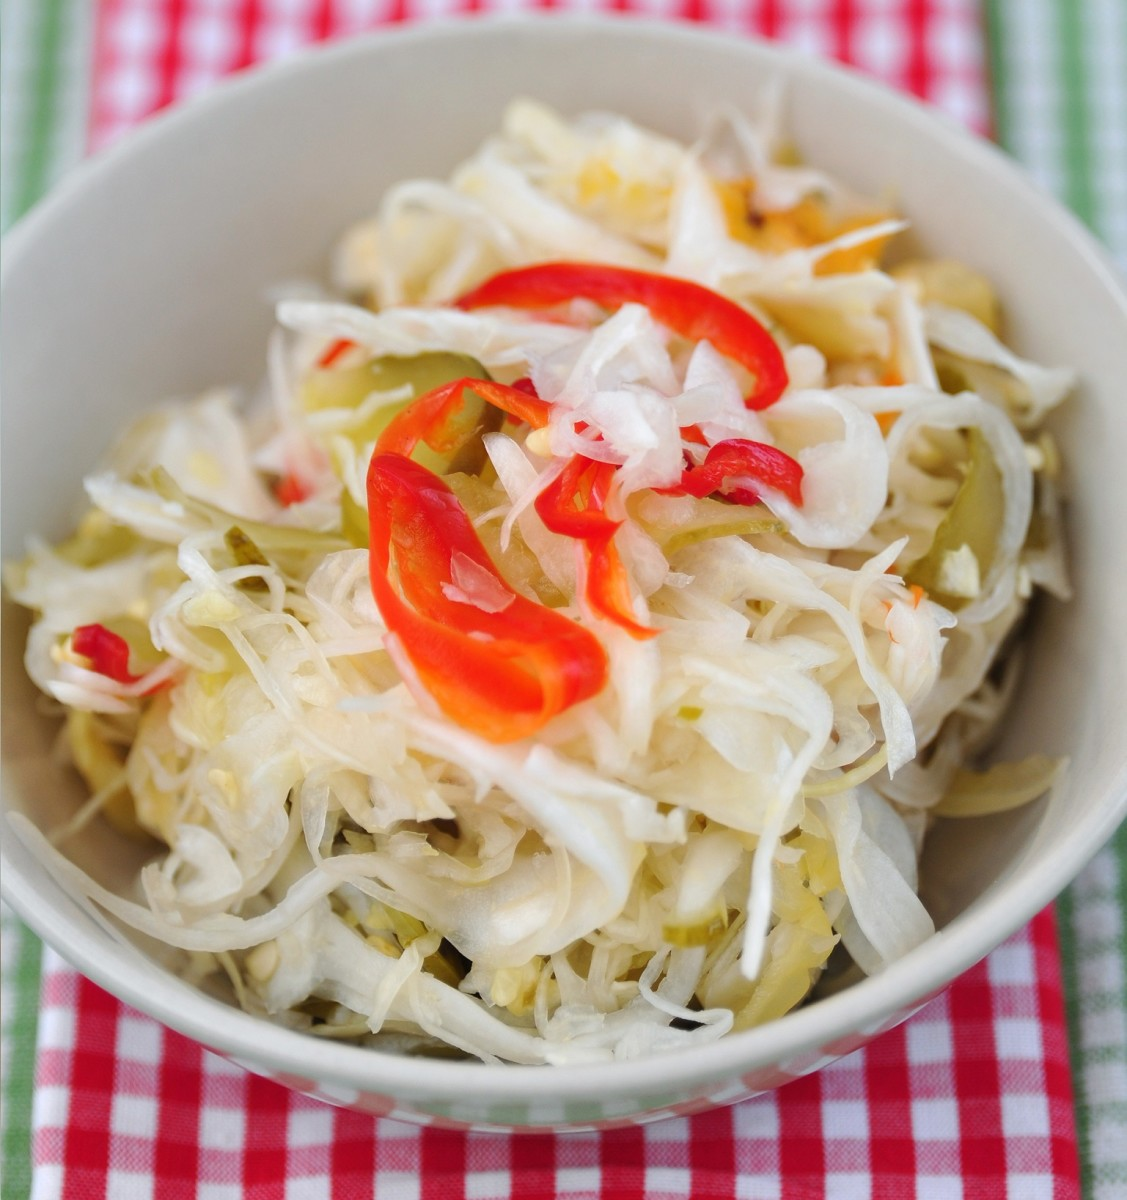 Tangy Crunchy Coleslaw